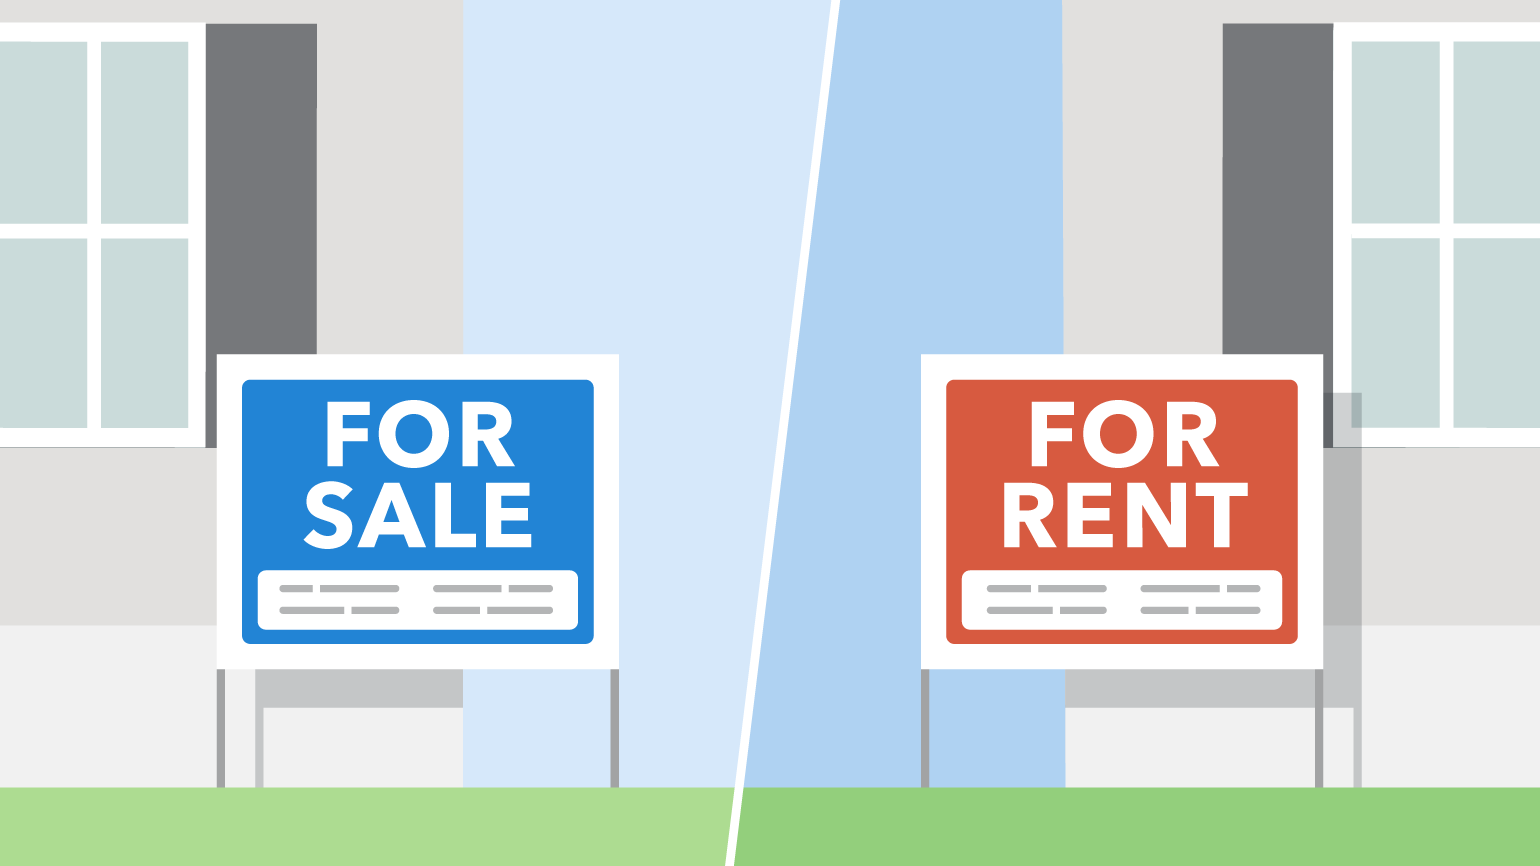 Should residents buy a house during residency?